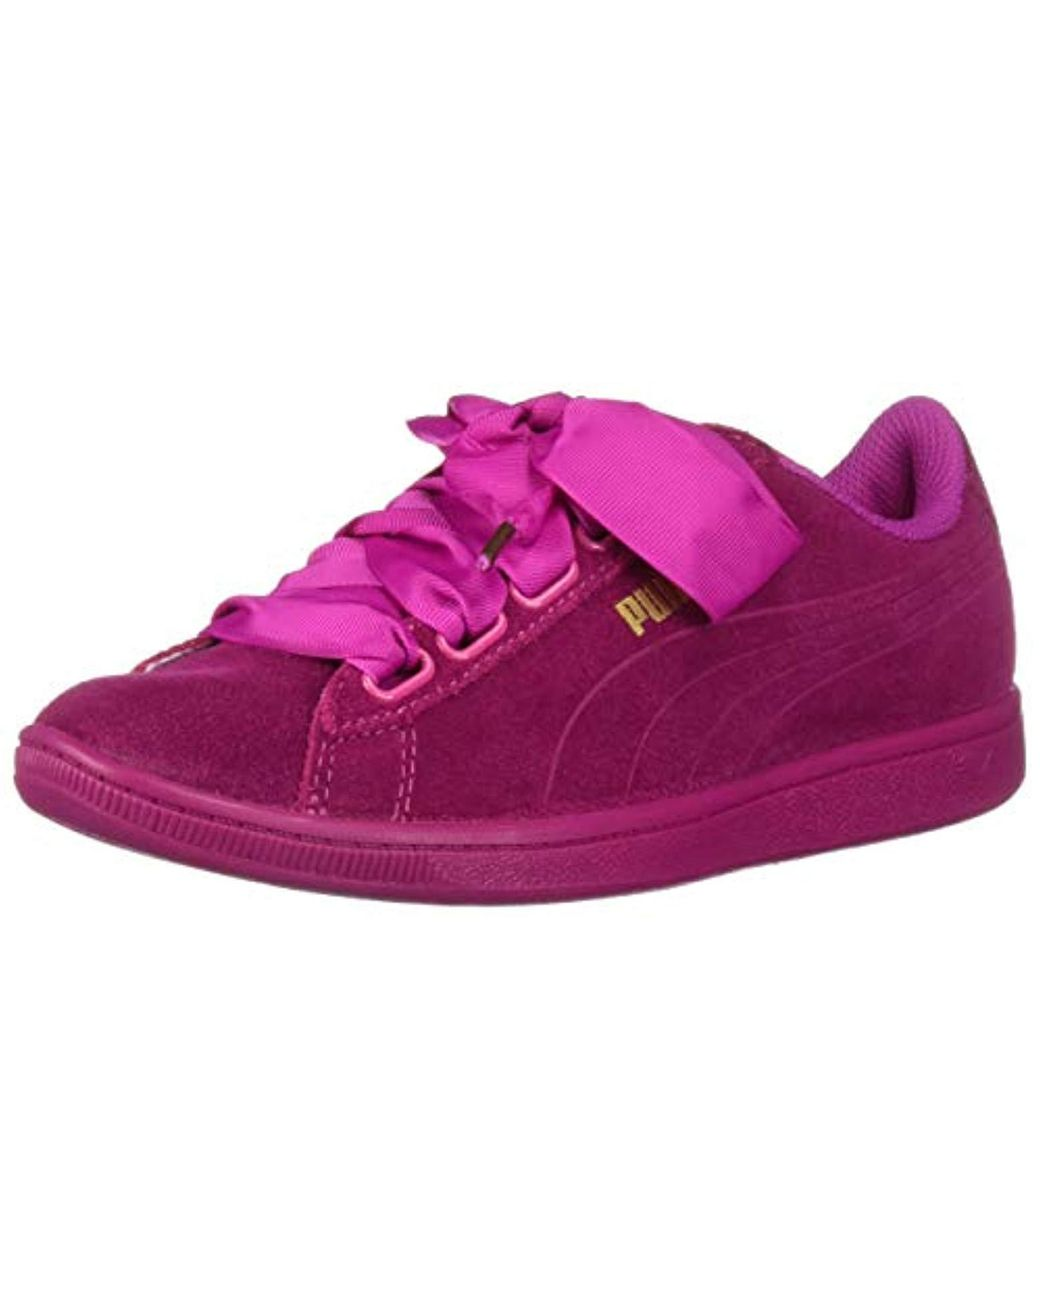 Vikky Women's Purple Women's Ribbon Women's Sneaker Purple Ribbon Sneaker Vikky ymb76YfvIg